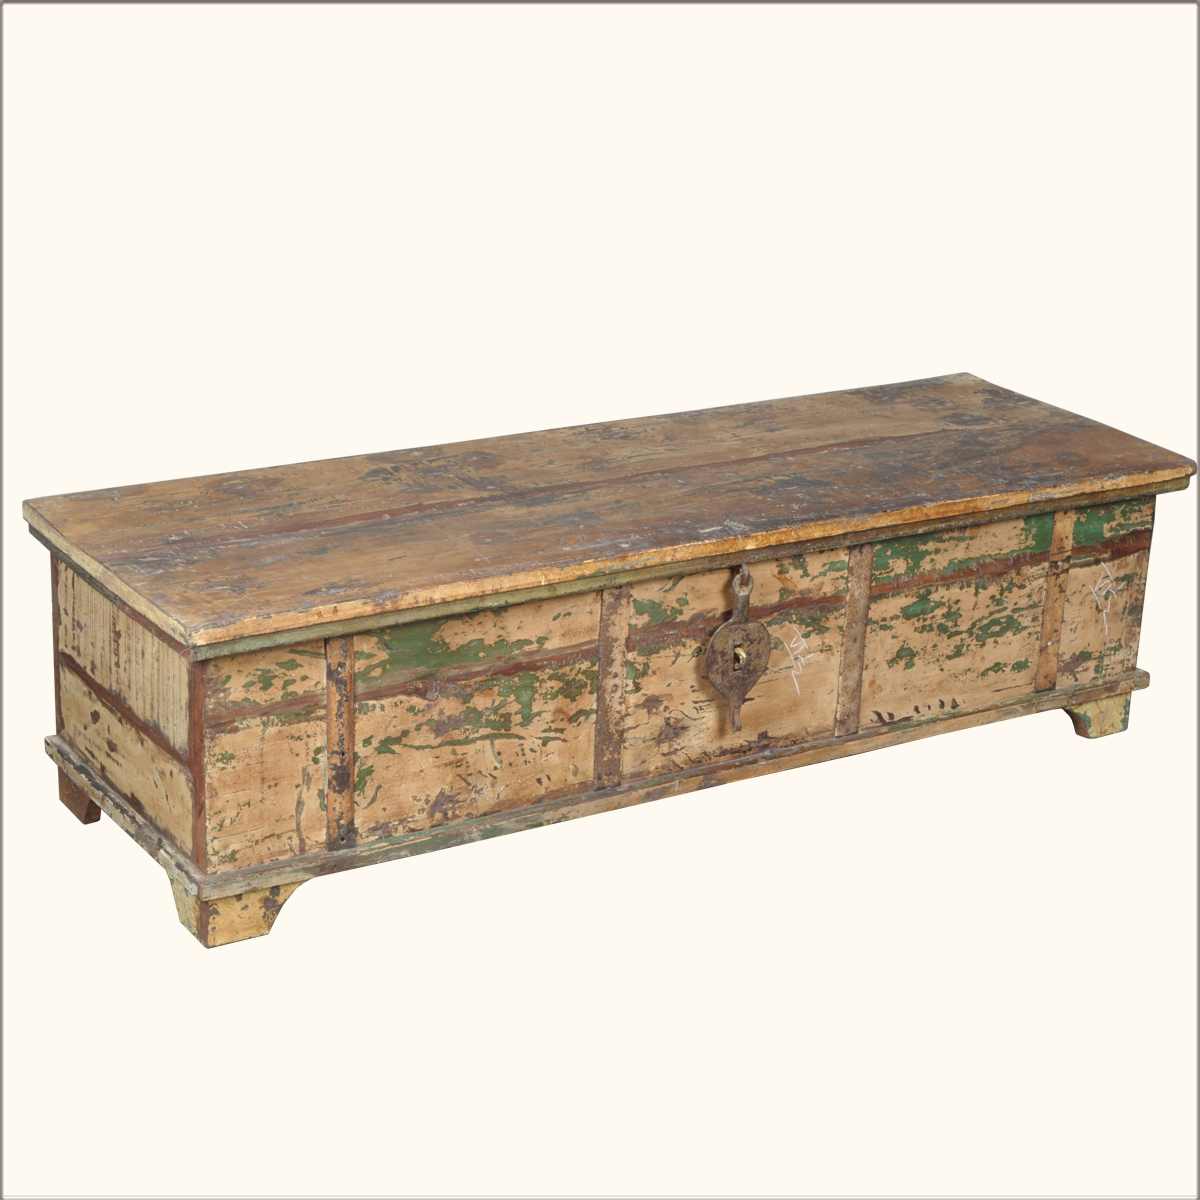 Large Rustic Reclaimed Distressed Old Wood Coffee Table Chest Trunk Storage Box Ebay: coffee table chest with storage